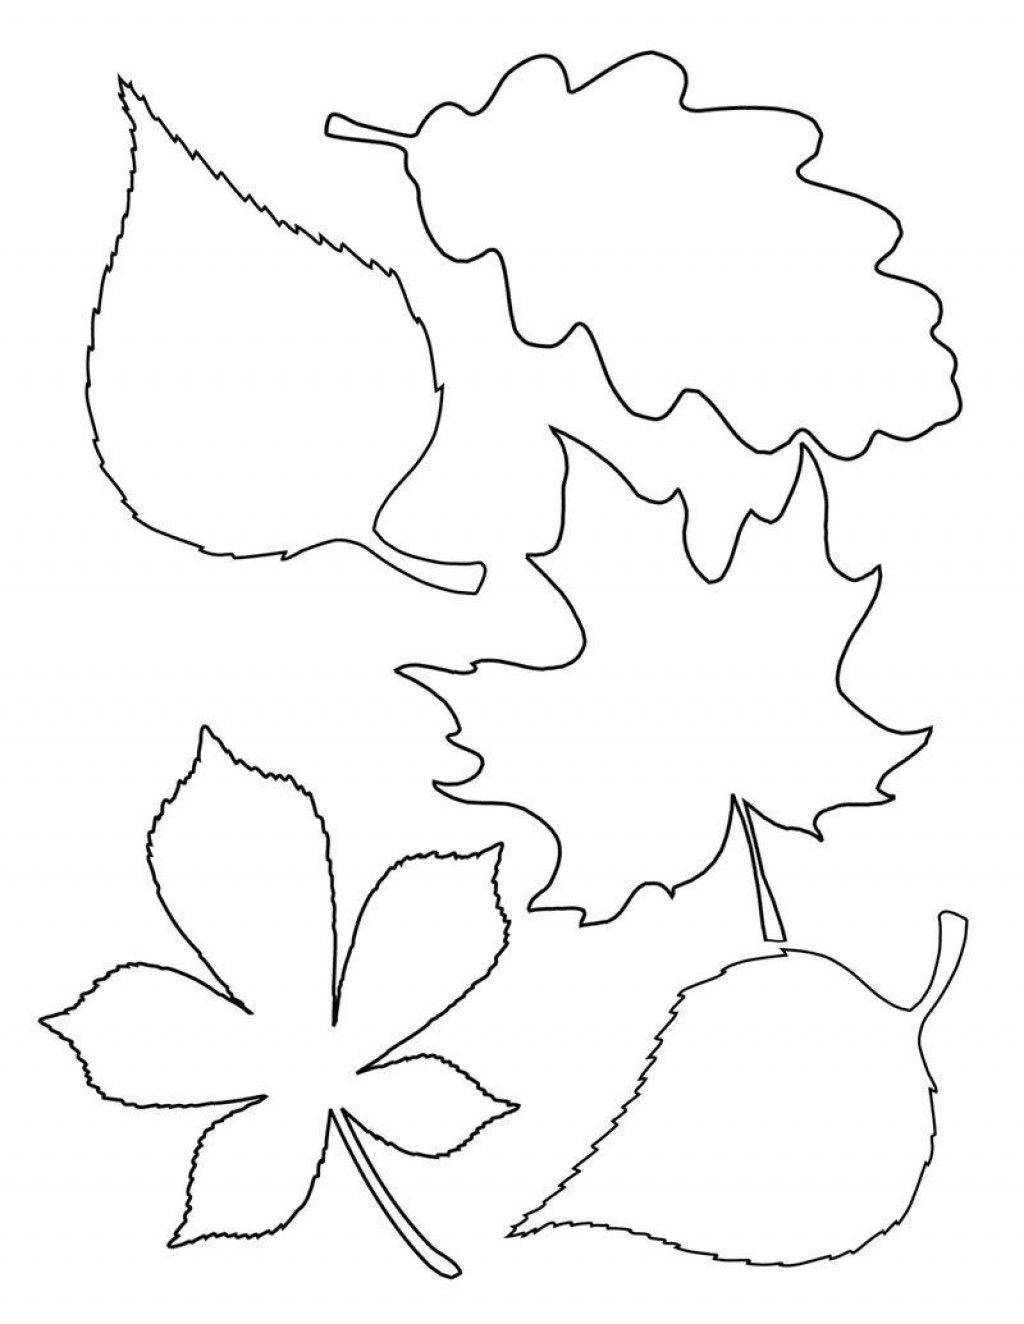 004 Astounding Leaf Template With Line Design  Fall Printable BlankLarge